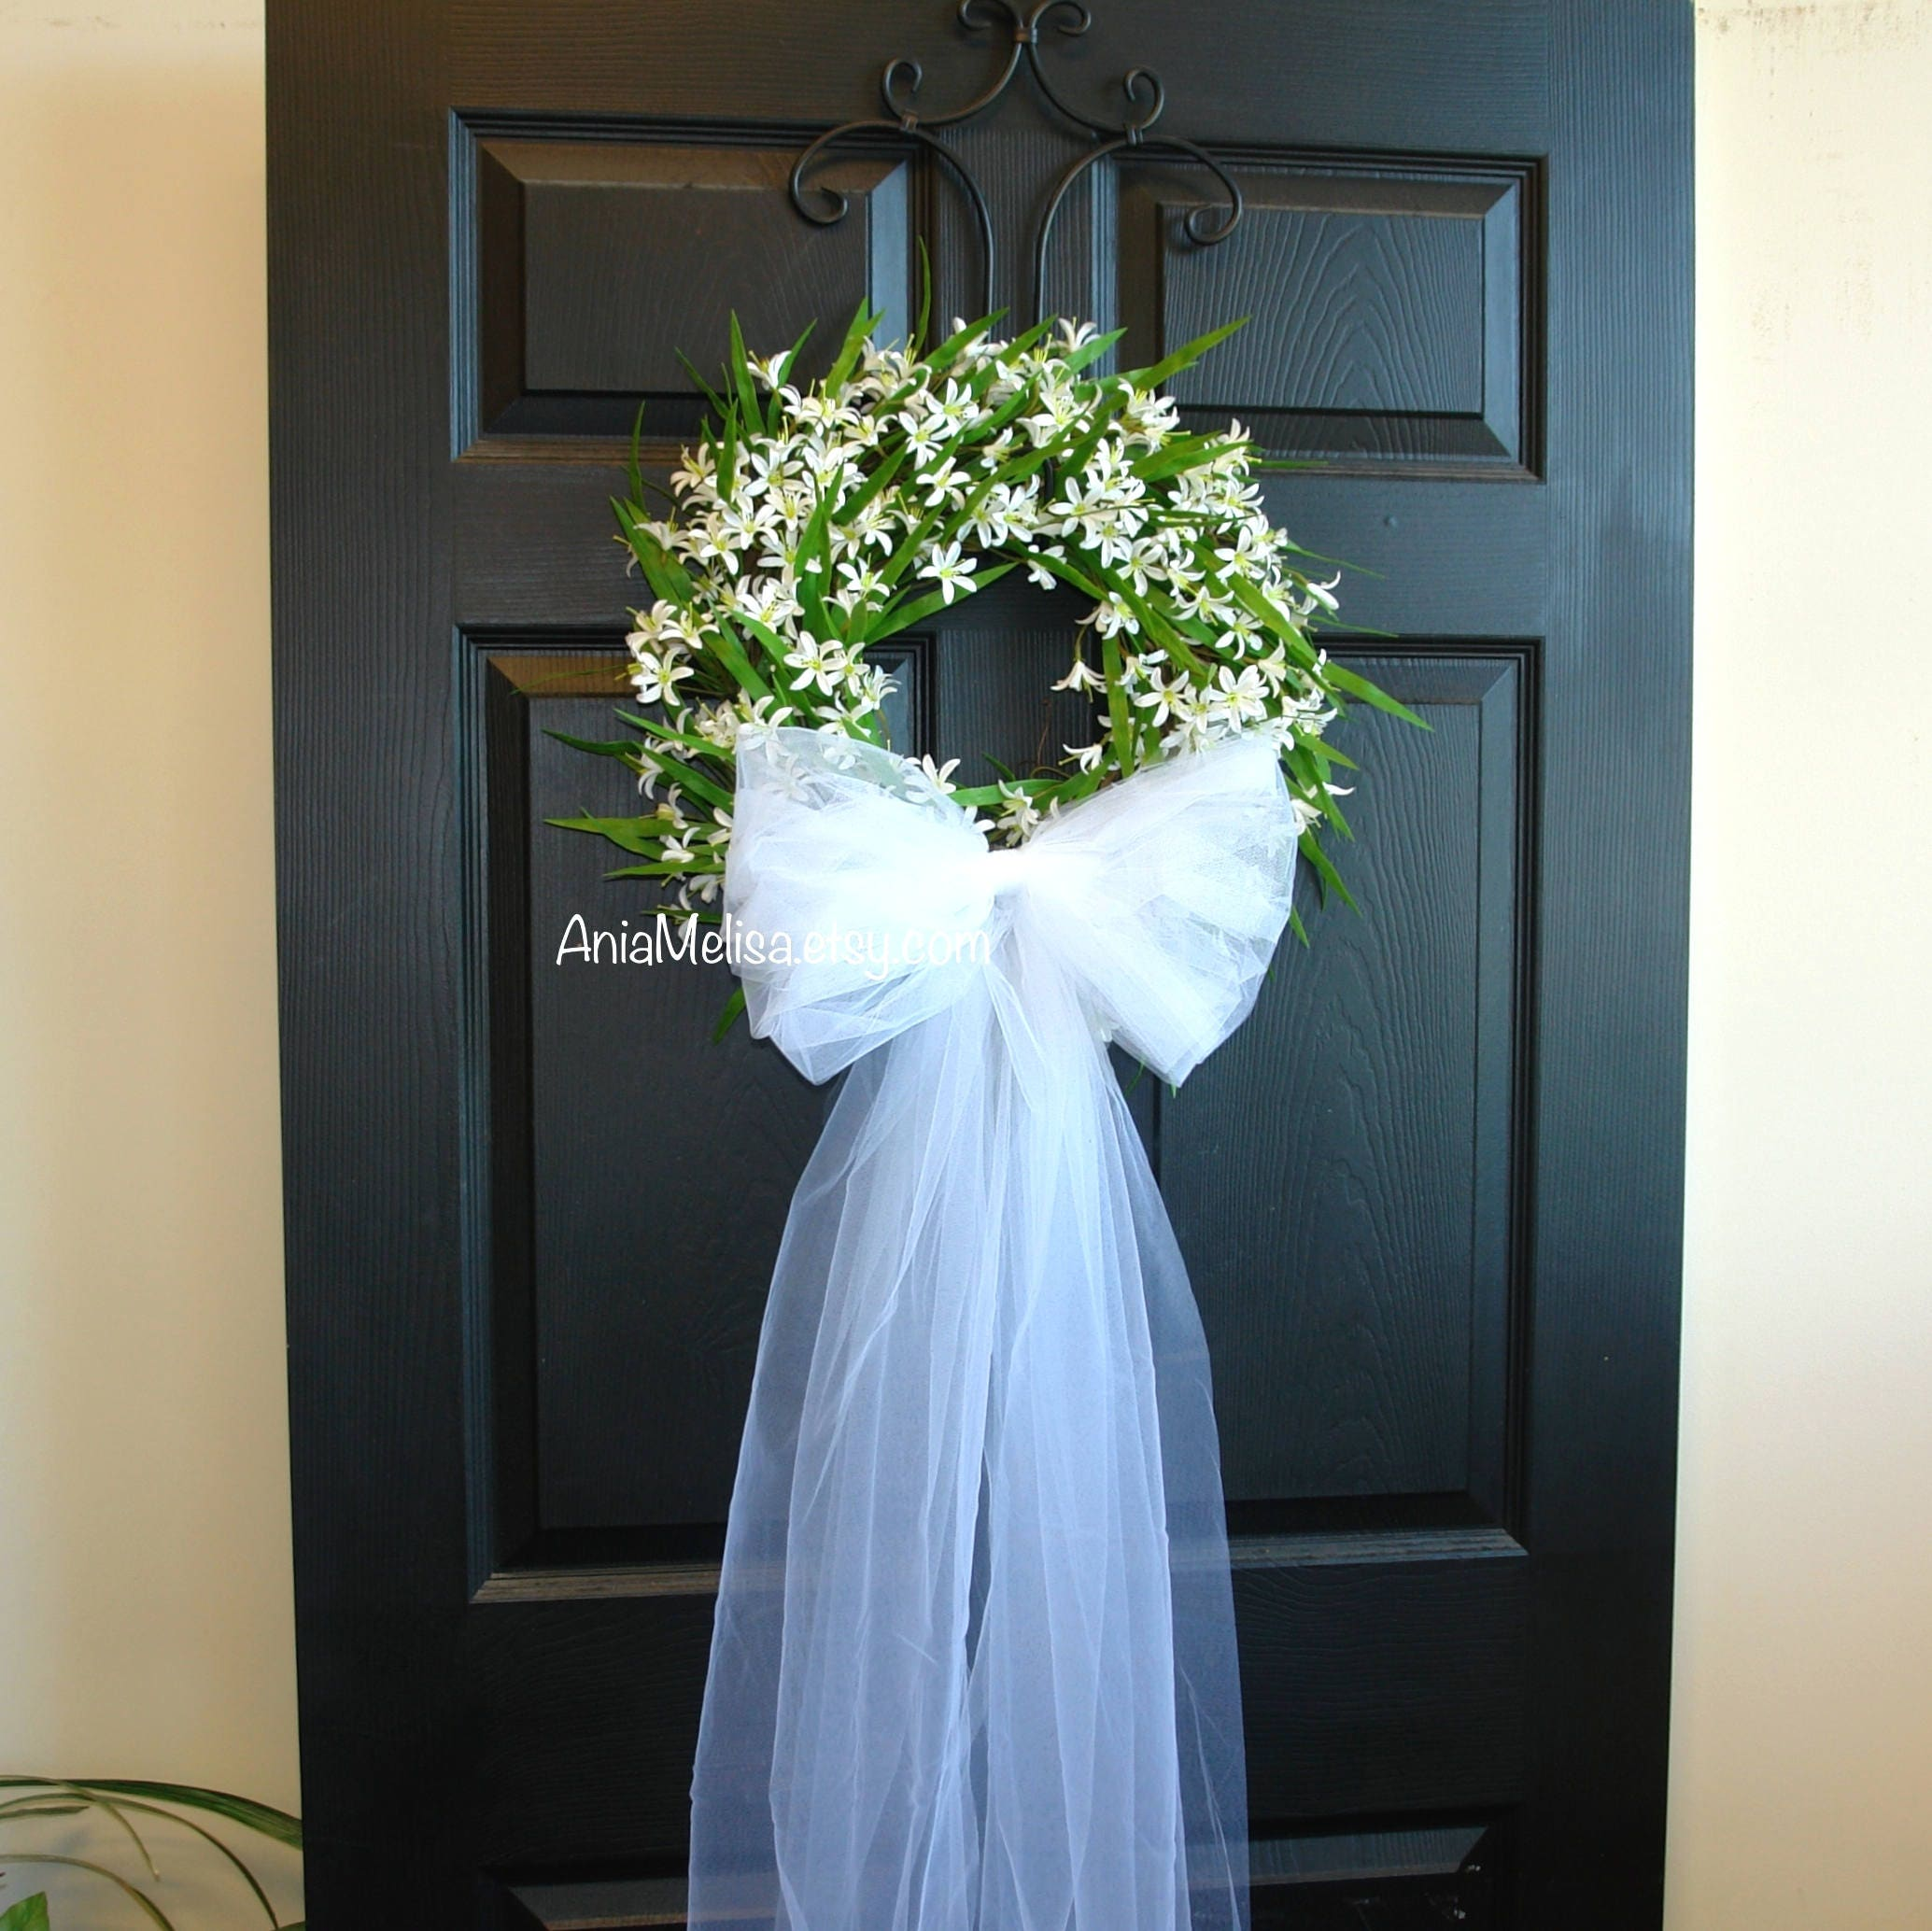 7 Barn Wedding Decoration Ideas For A Spring Wedding: Spring Wedding Wreaths For Front Door Wreaths Wedding Bridal